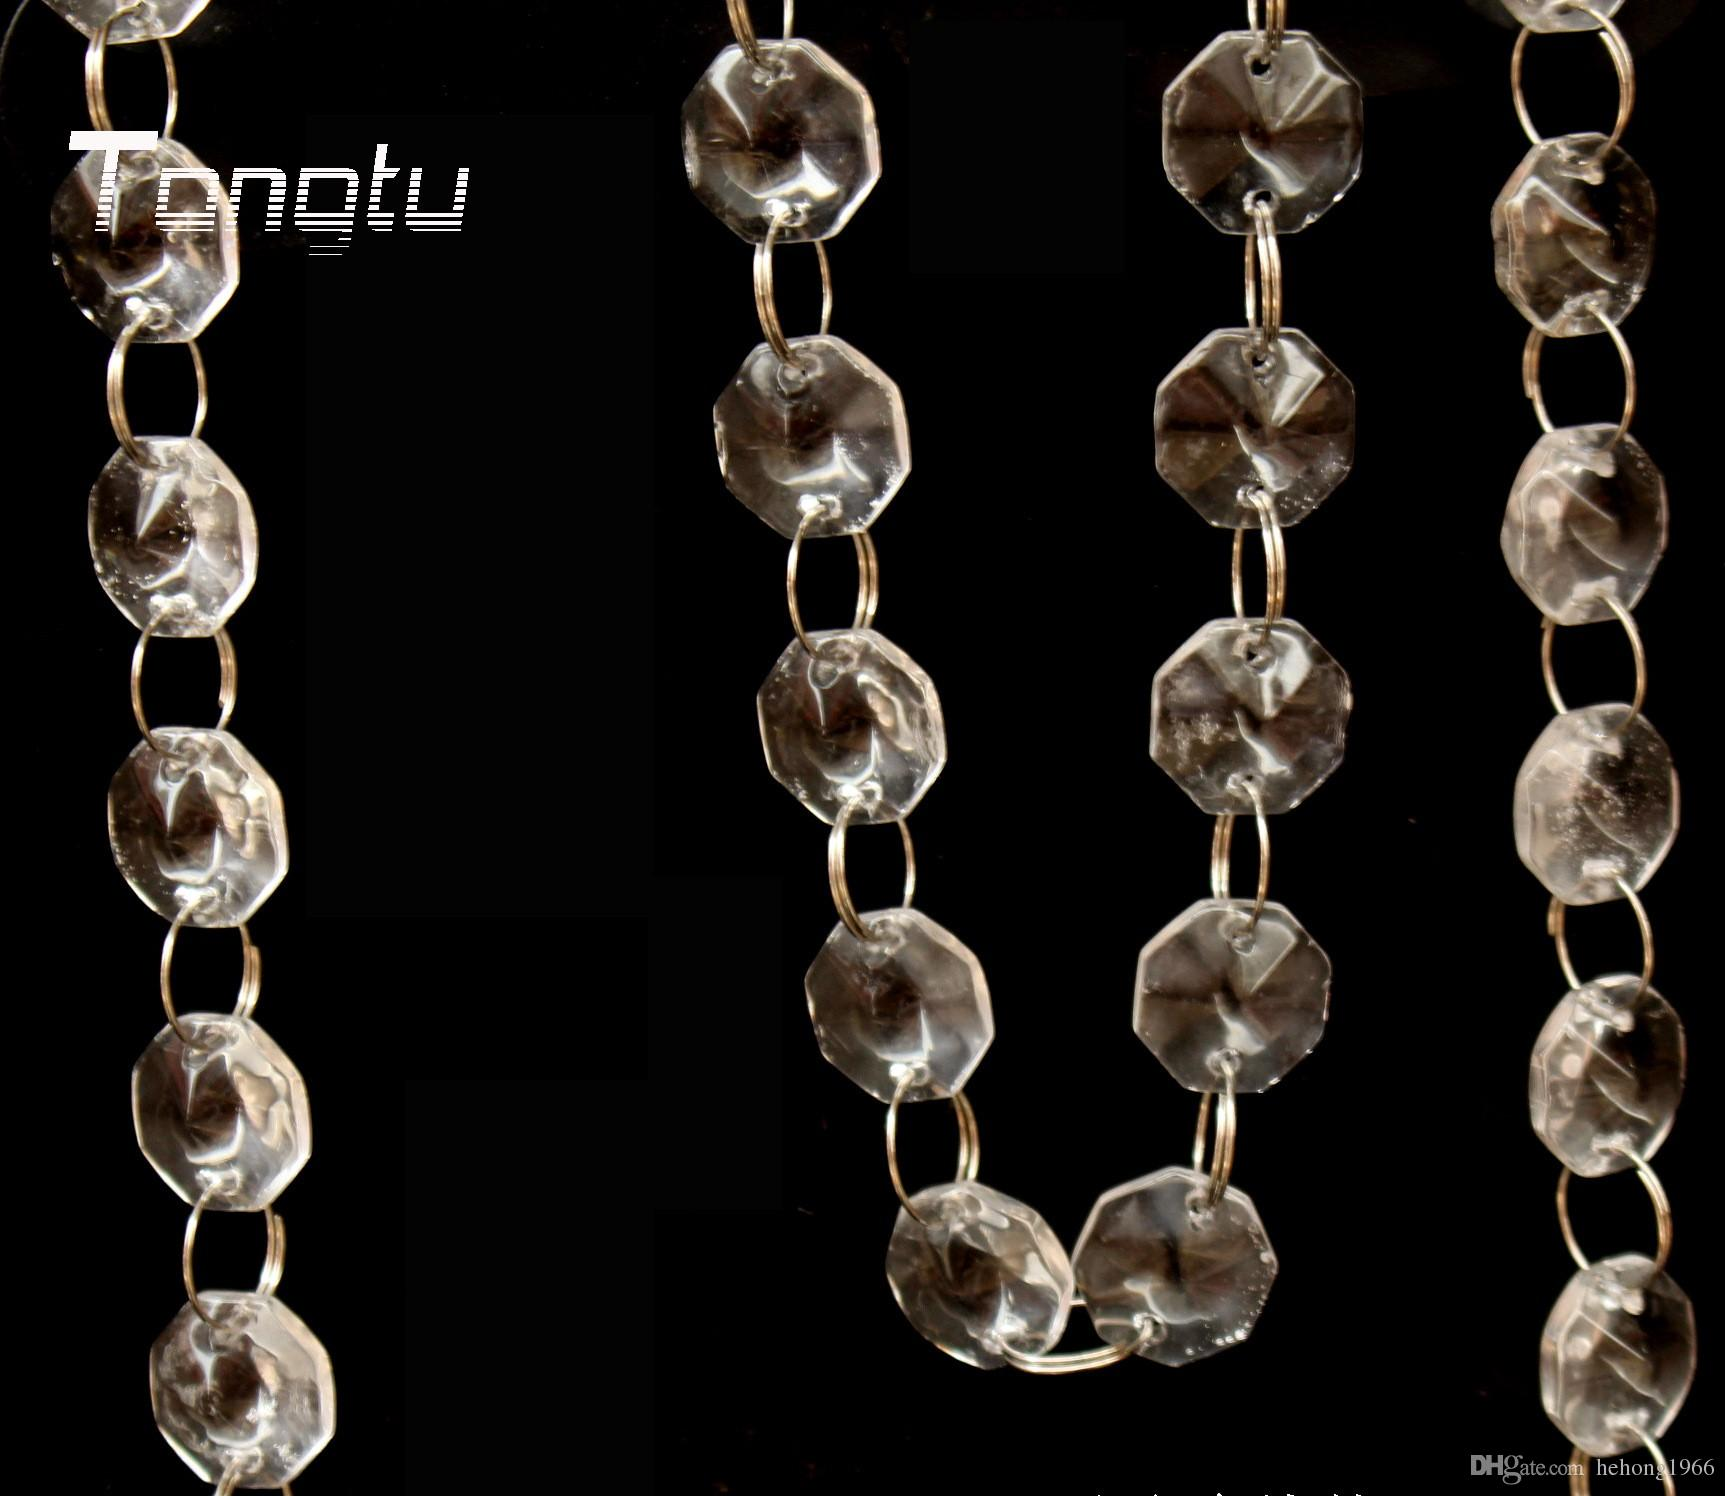 Bead Chain Crystal Hung Strands Strung Wedding Prop Room Window Decorate Transparent Glass Bradde Chains Eight Square Beads 2 2wn C